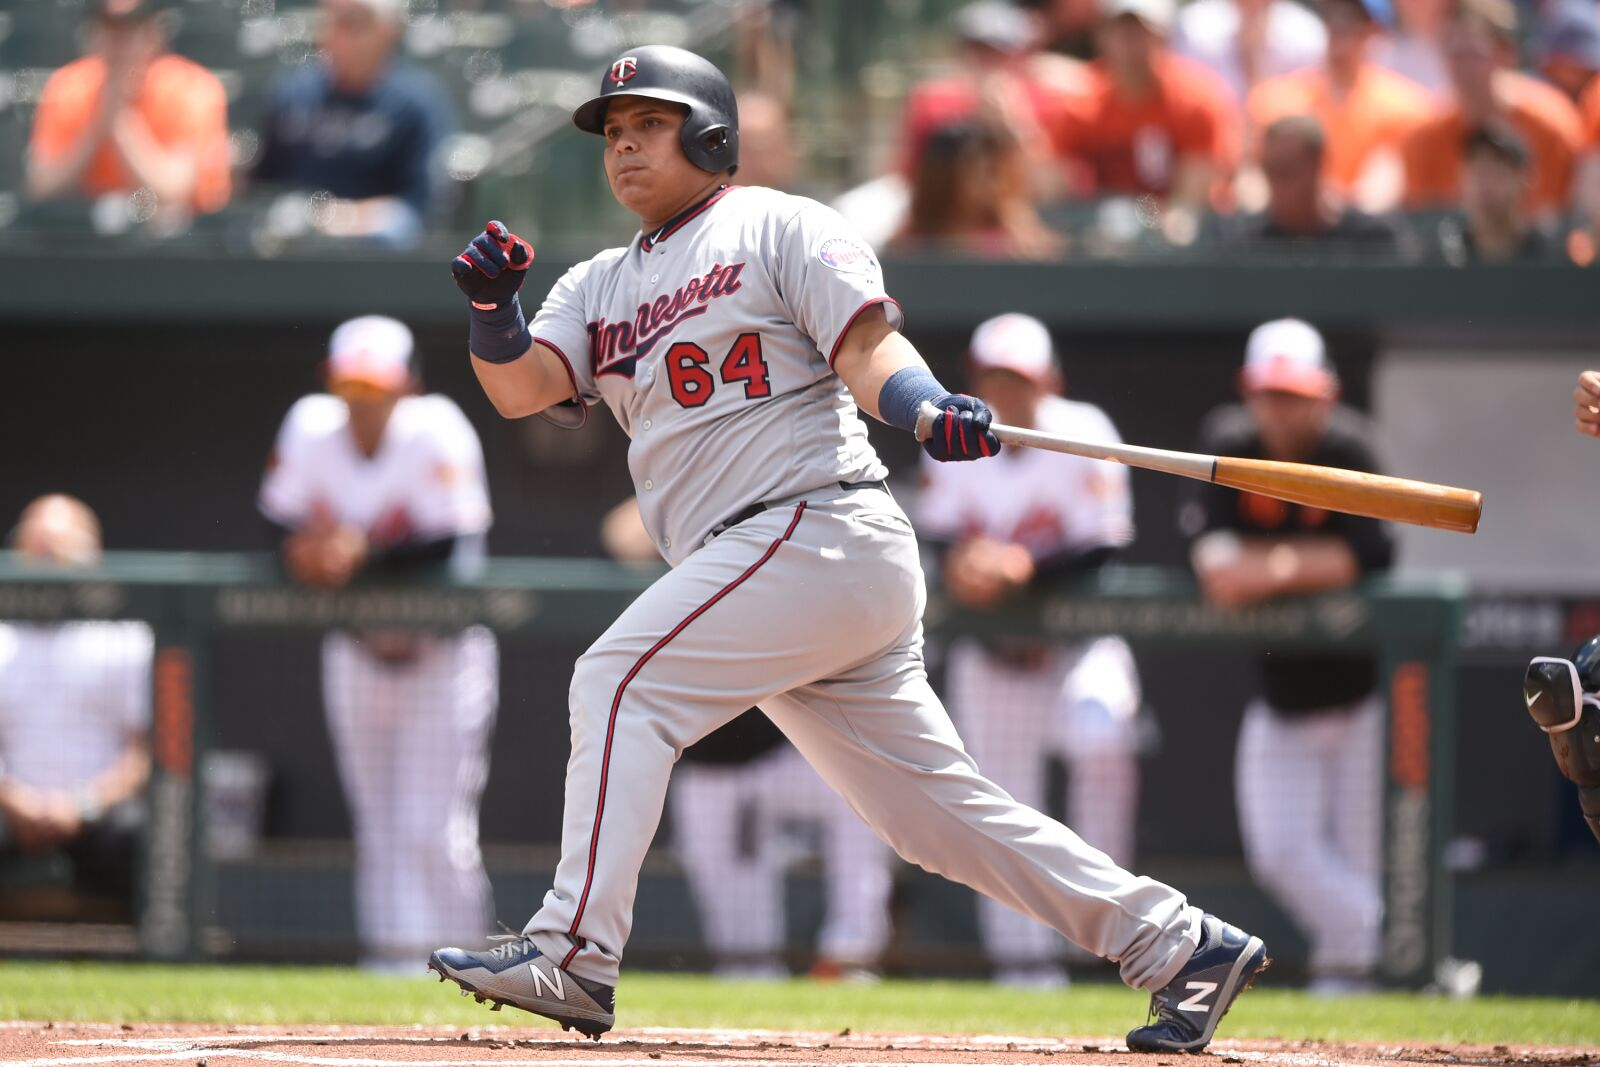 Minnesota Twins: Willians Astudillo's injury will keep him out until September